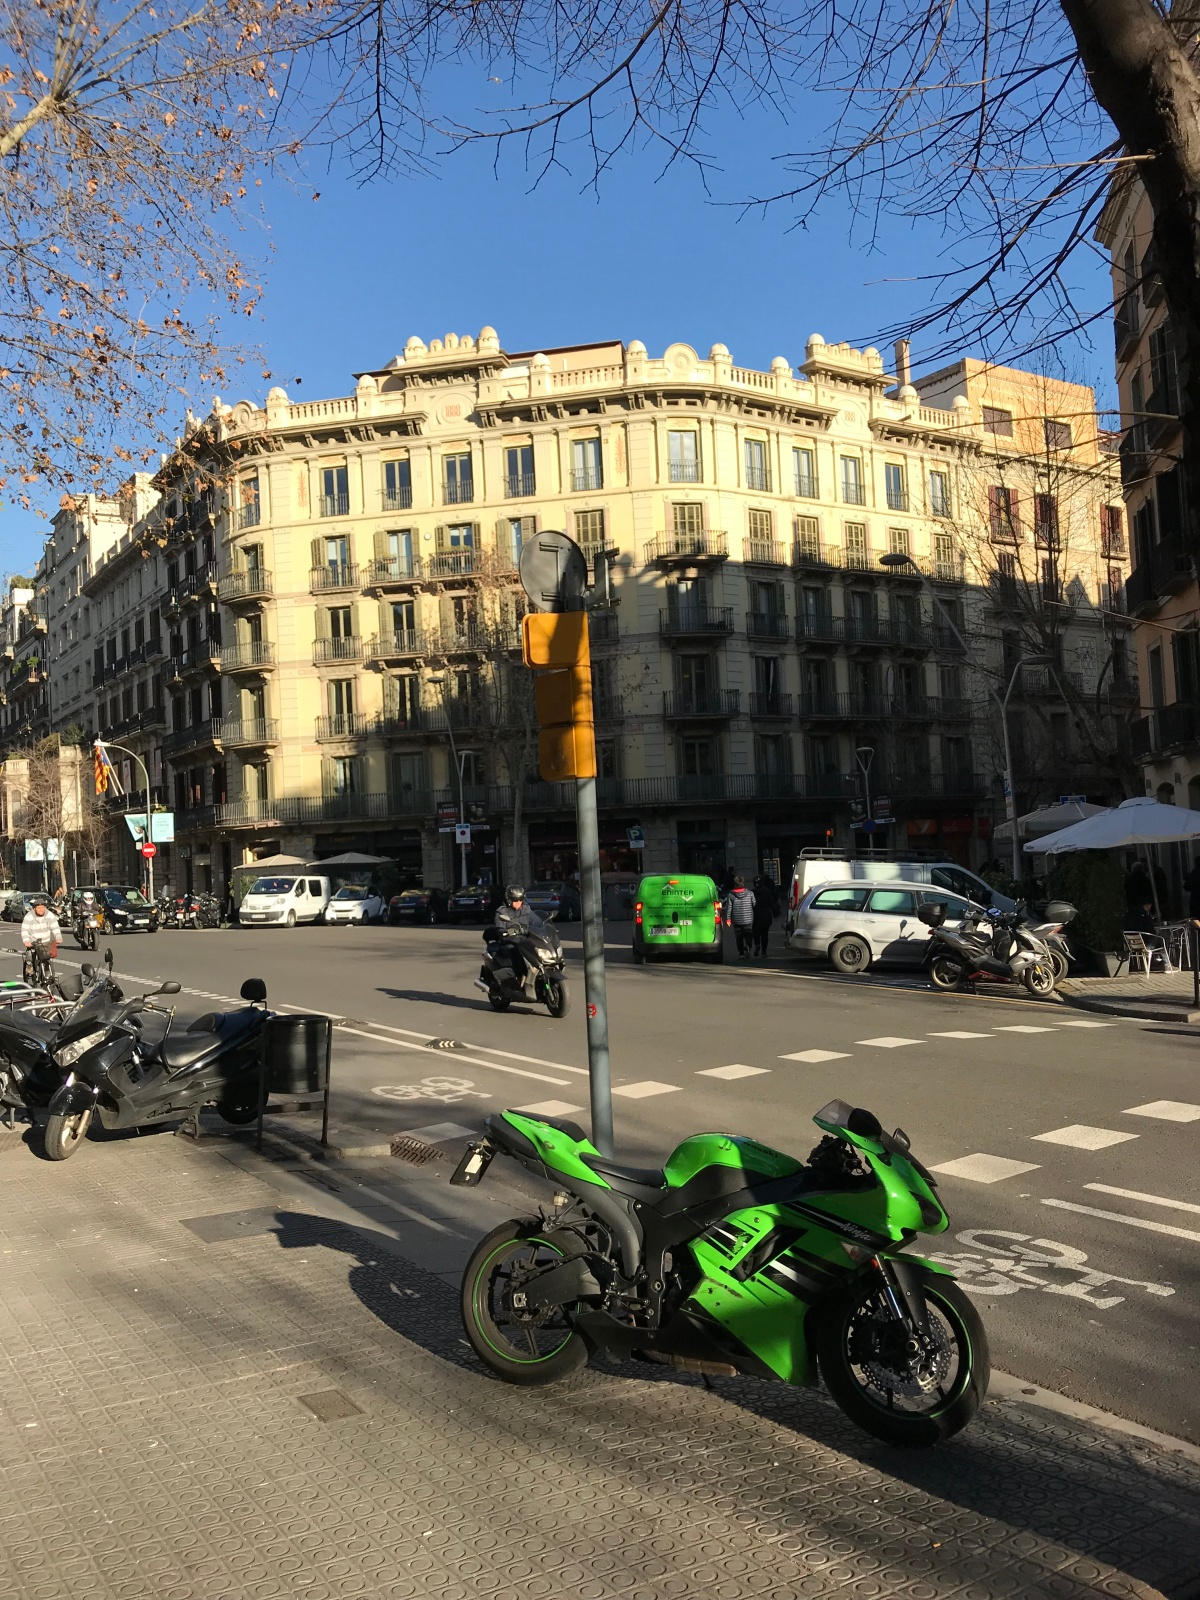 Barcelona – the road back